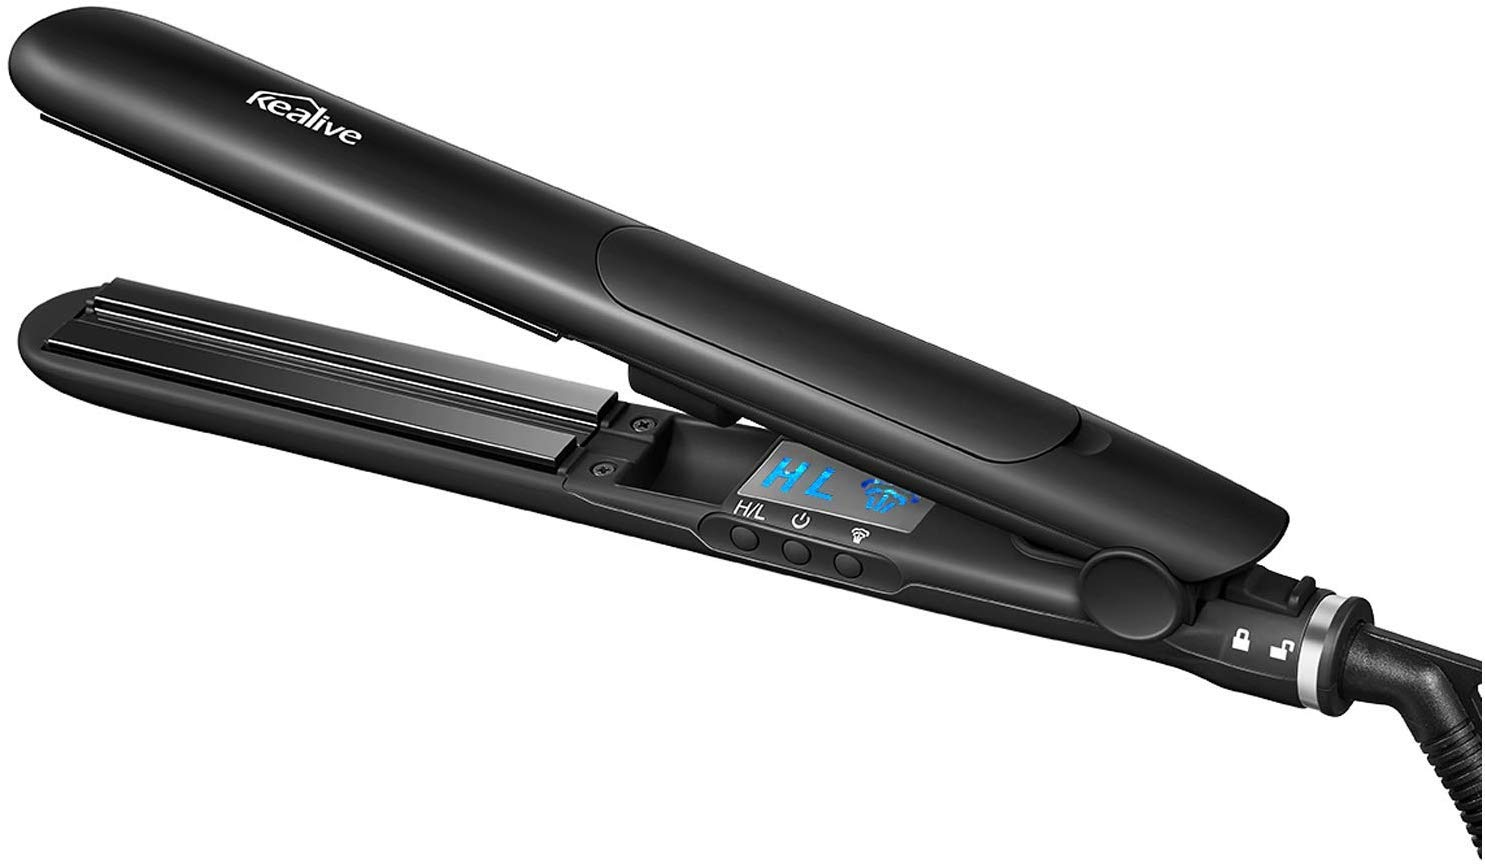 Kealive Professional Flat Iron, Steam Hair Straightener and Curling Iron, 1 Inch Floating Ceramic Plates, Adjustable Temperature, Heat up Fast, Dual Voltage for Travel, 110-240V